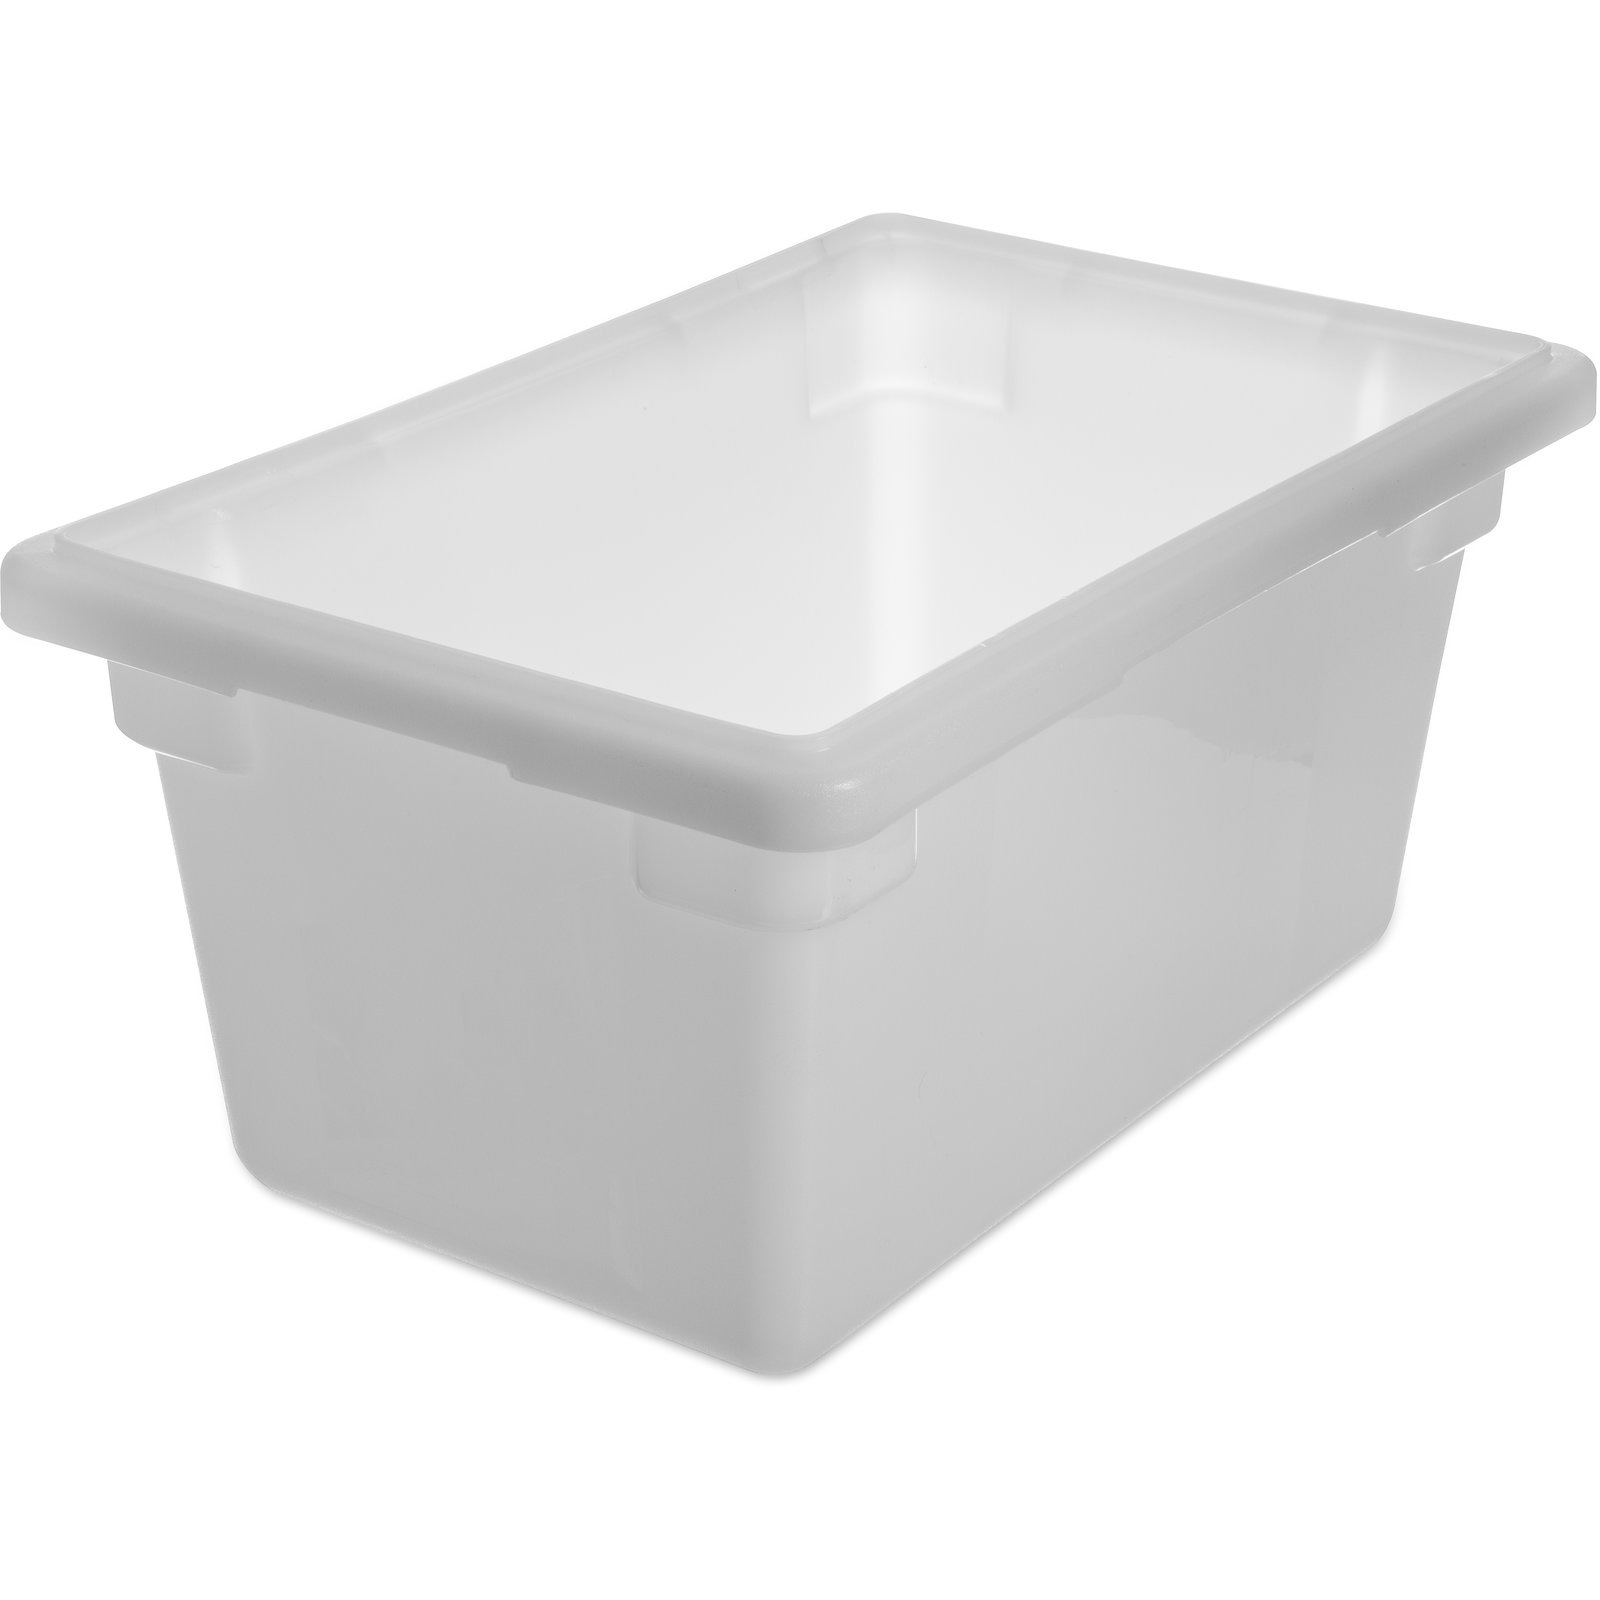 1063202 StorPlus Polyethylene Food Box Storage Container 5 Gallon